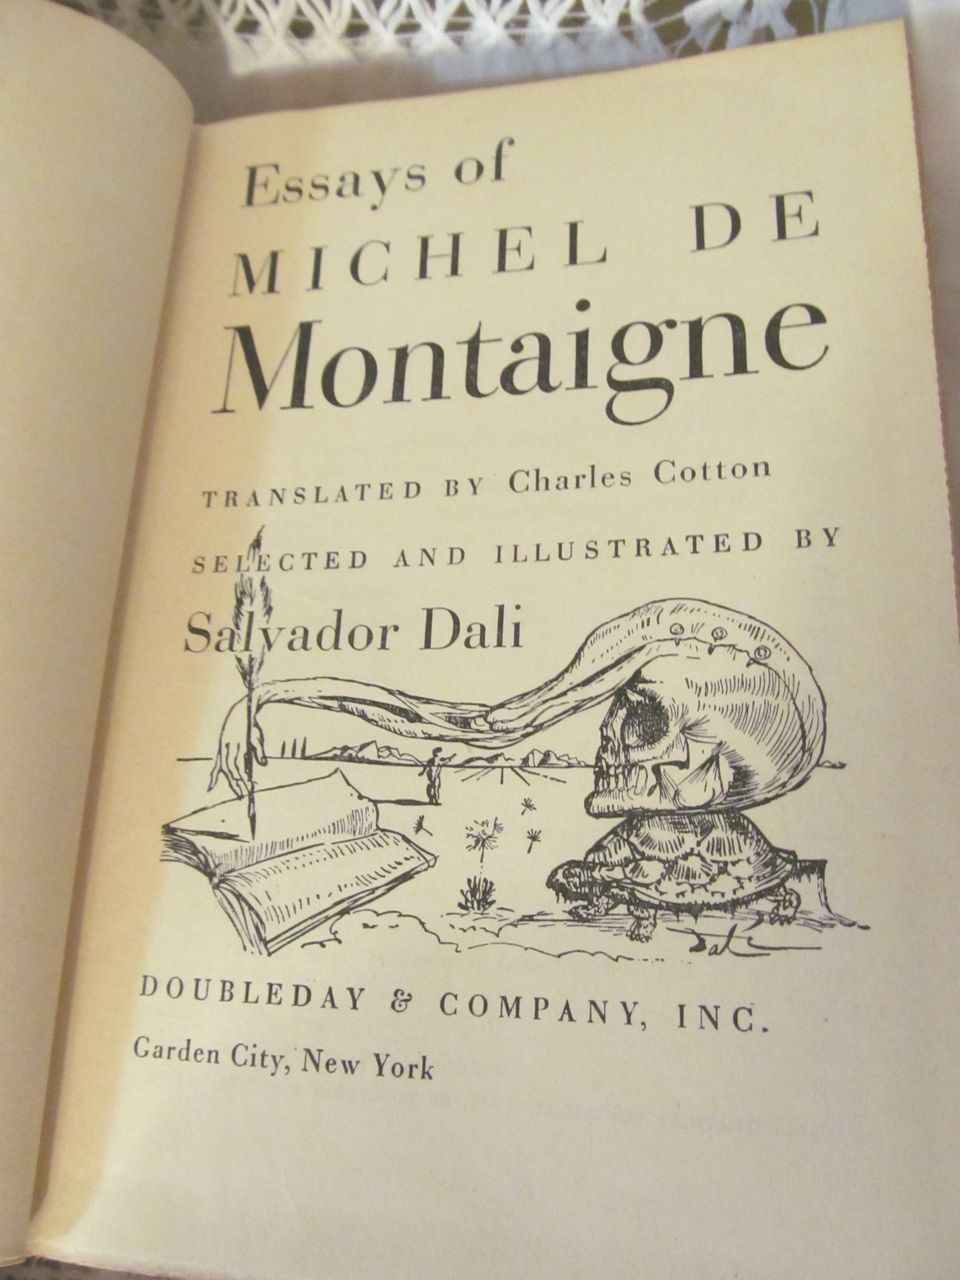 book of essays montaigne The essays of montaigne/book ii from wikisource essays of montaigne jump to: navigation, search book i the essays of montaigne by michel de montaigne, translated by charles cotton.